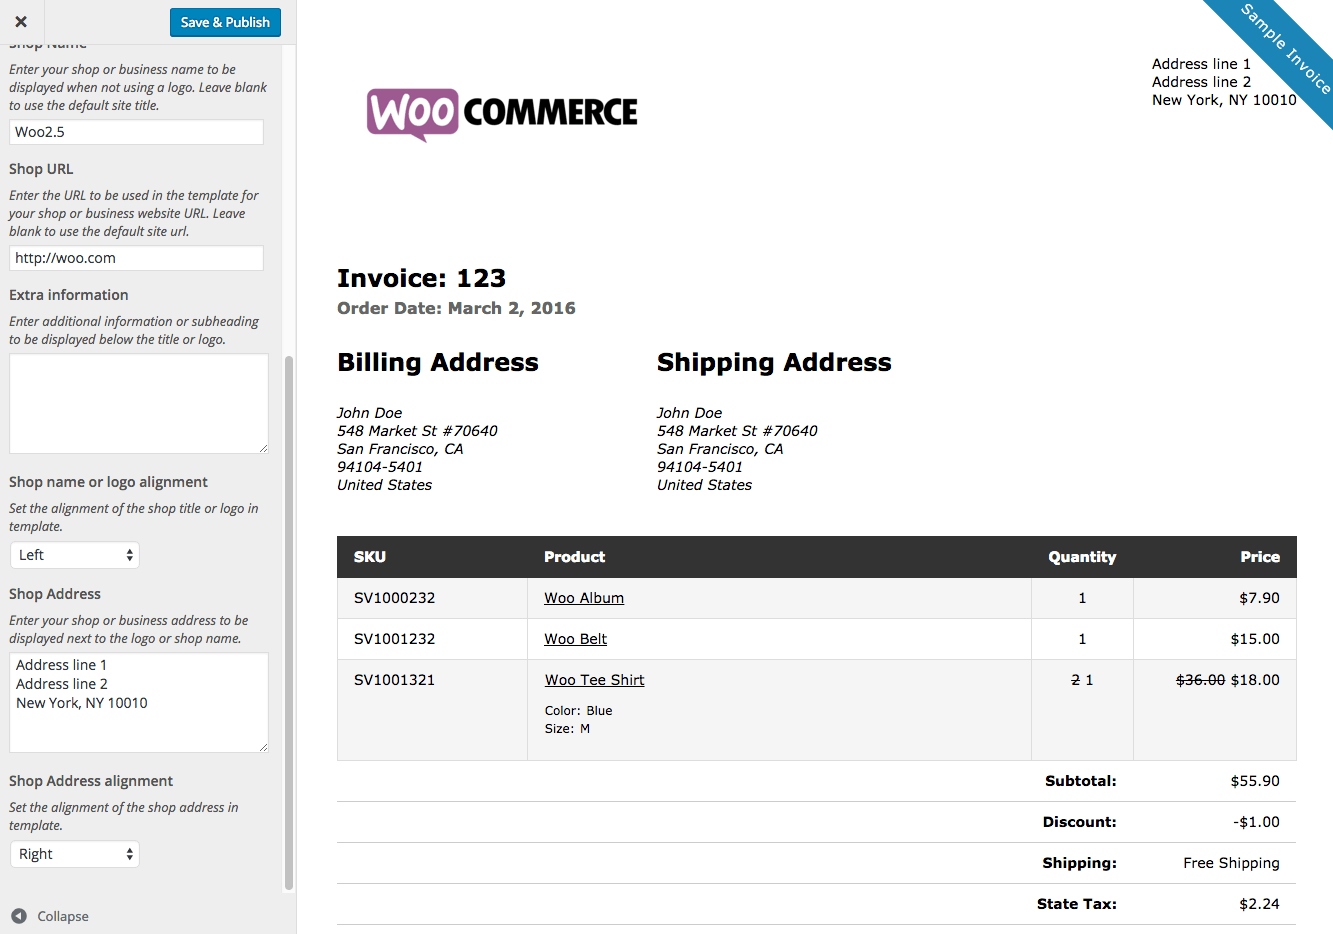 Opposenewapstandardsus  Unusual Woocommerce Print Invoices Amp Packing Lists  Woocommerce Docs With Lovable Woocommerce Print Invoices  Packing Lists Customizer With Delectable Cash Receipt Voucher Format Also German Taxi Receipt In Addition Salsa Receipts And Eggnog Receipt As Well As Format Of Receipt And Payment Account Additionally Cash Receipt Meaning From Docswoocommercecom With Opposenewapstandardsus  Lovable Woocommerce Print Invoices Amp Packing Lists  Woocommerce Docs With Delectable Woocommerce Print Invoices  Packing Lists Customizer And Unusual Cash Receipt Voucher Format Also German Taxi Receipt In Addition Salsa Receipts From Docswoocommercecom